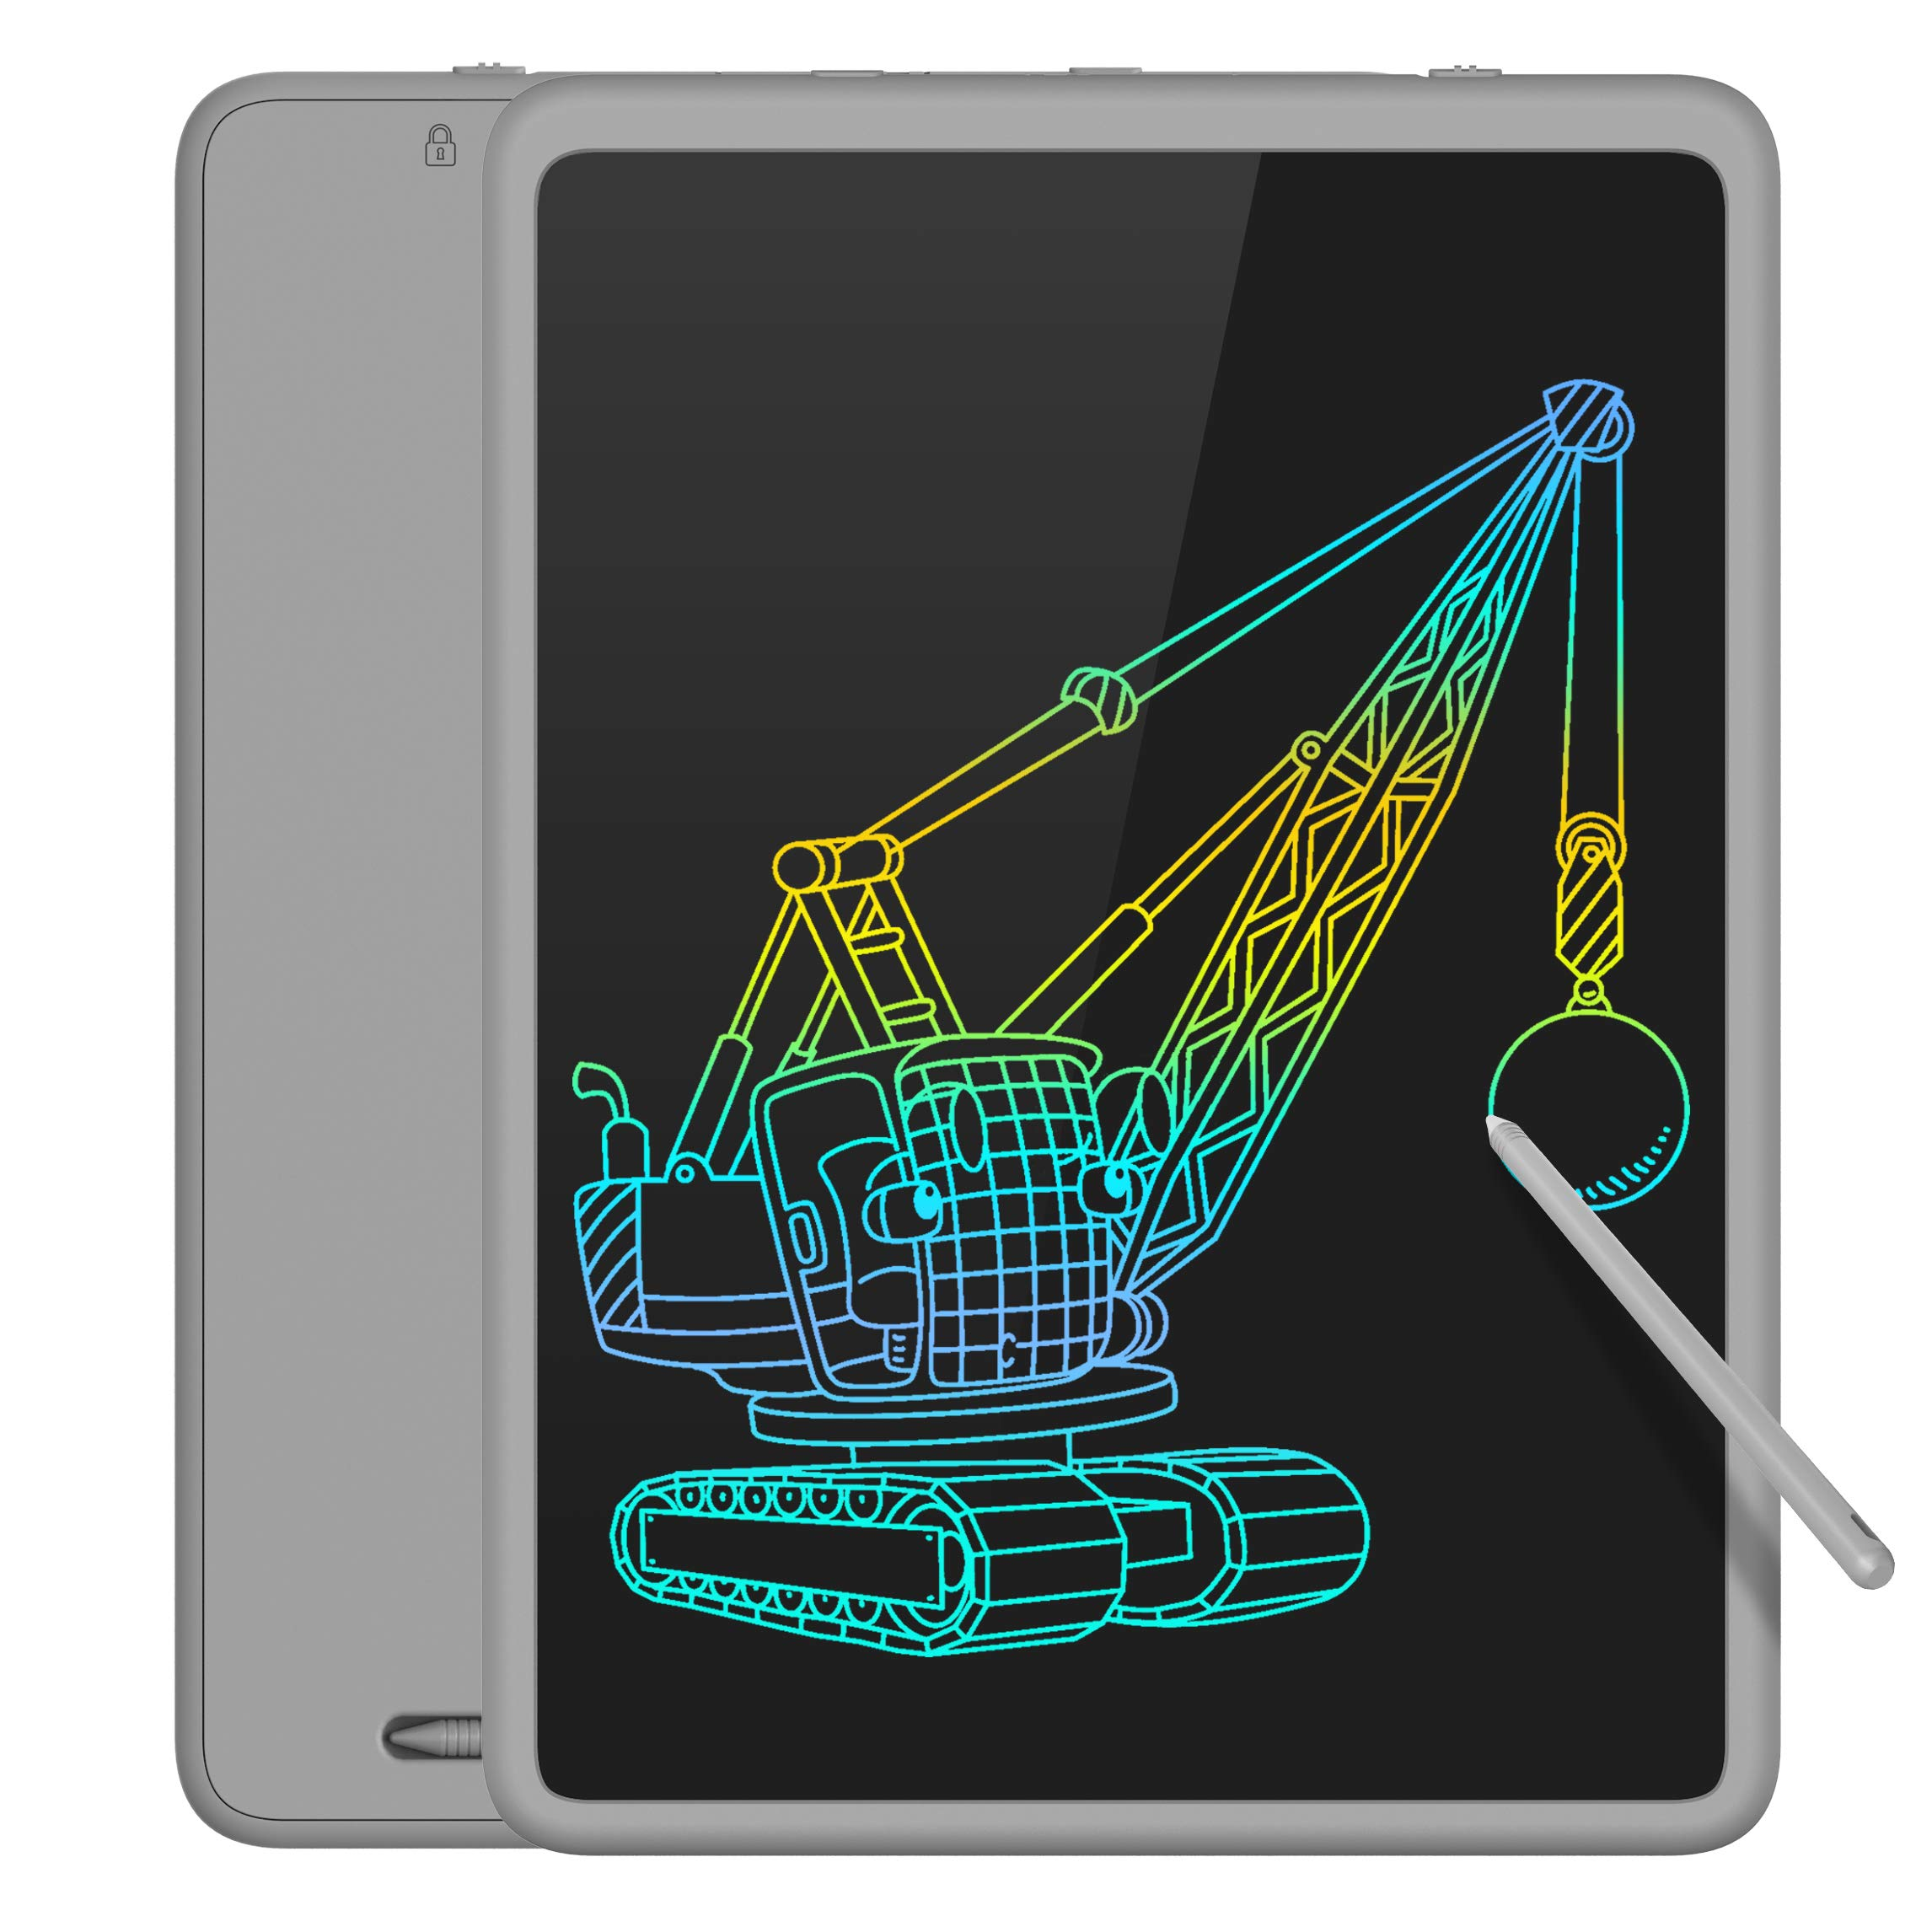 Tecboss LCD Writing Tablet Colorful Large Screen, Electronic Digital Drawing Board Doodle Pad for Office School Home (Gray, 11 Inch)